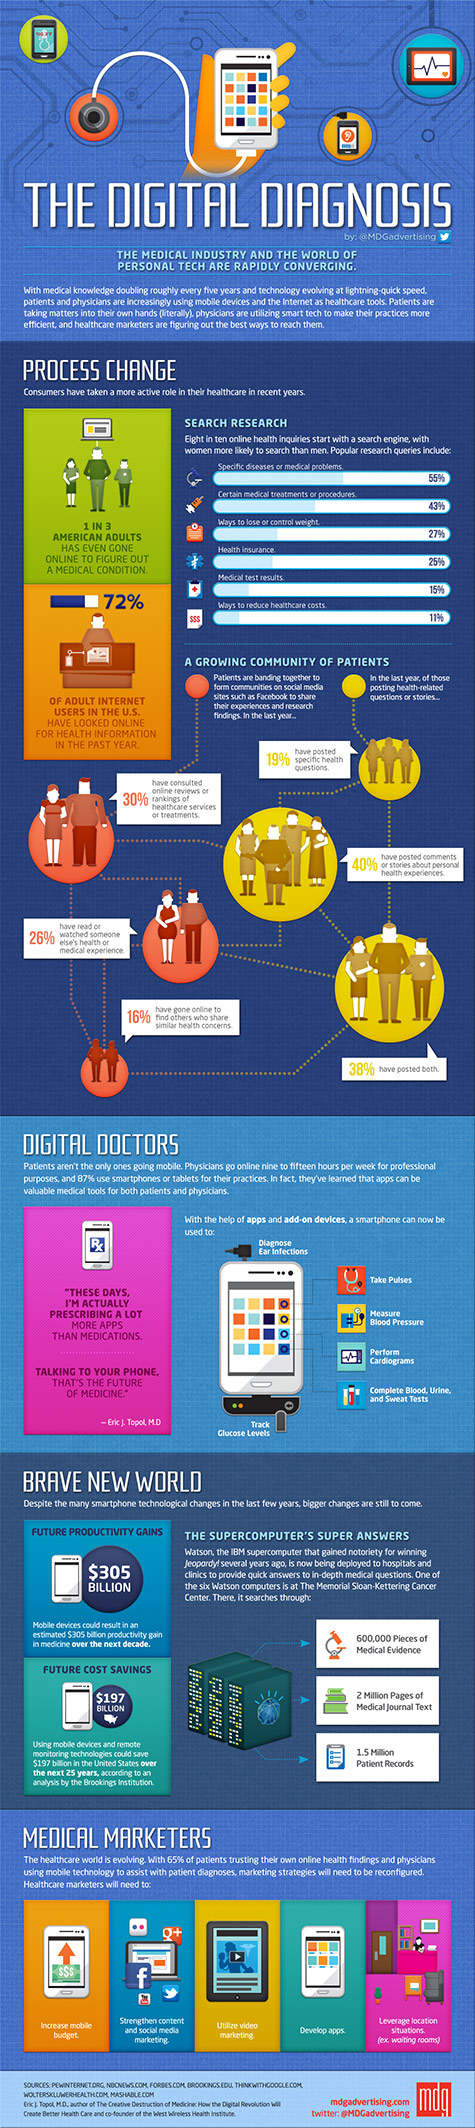 digital diagnosis infographic 475